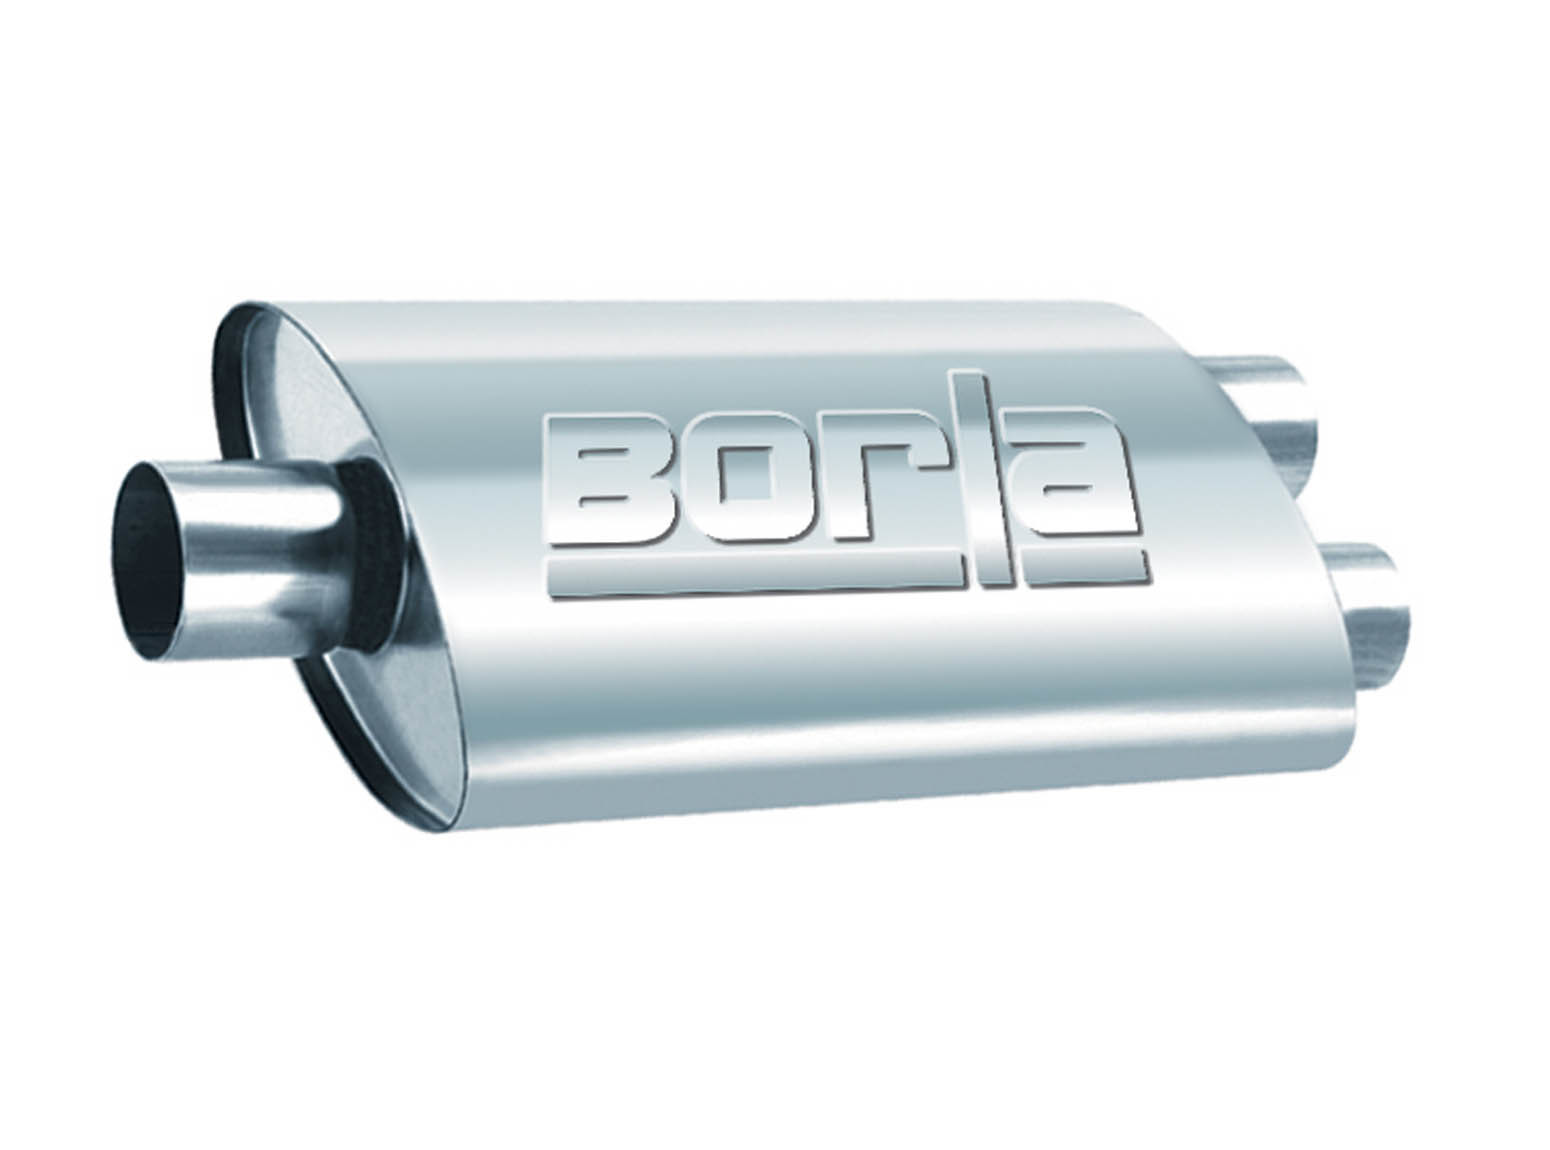 Borla 40348 Muffler, ProXS, 2-1/2 in Center Inlet, 2-1/2 in Offset Outlet, 19 x 4 x 9-1/2 in Oval Body, 19 in Long, Stainless, Natural, Universal, Each